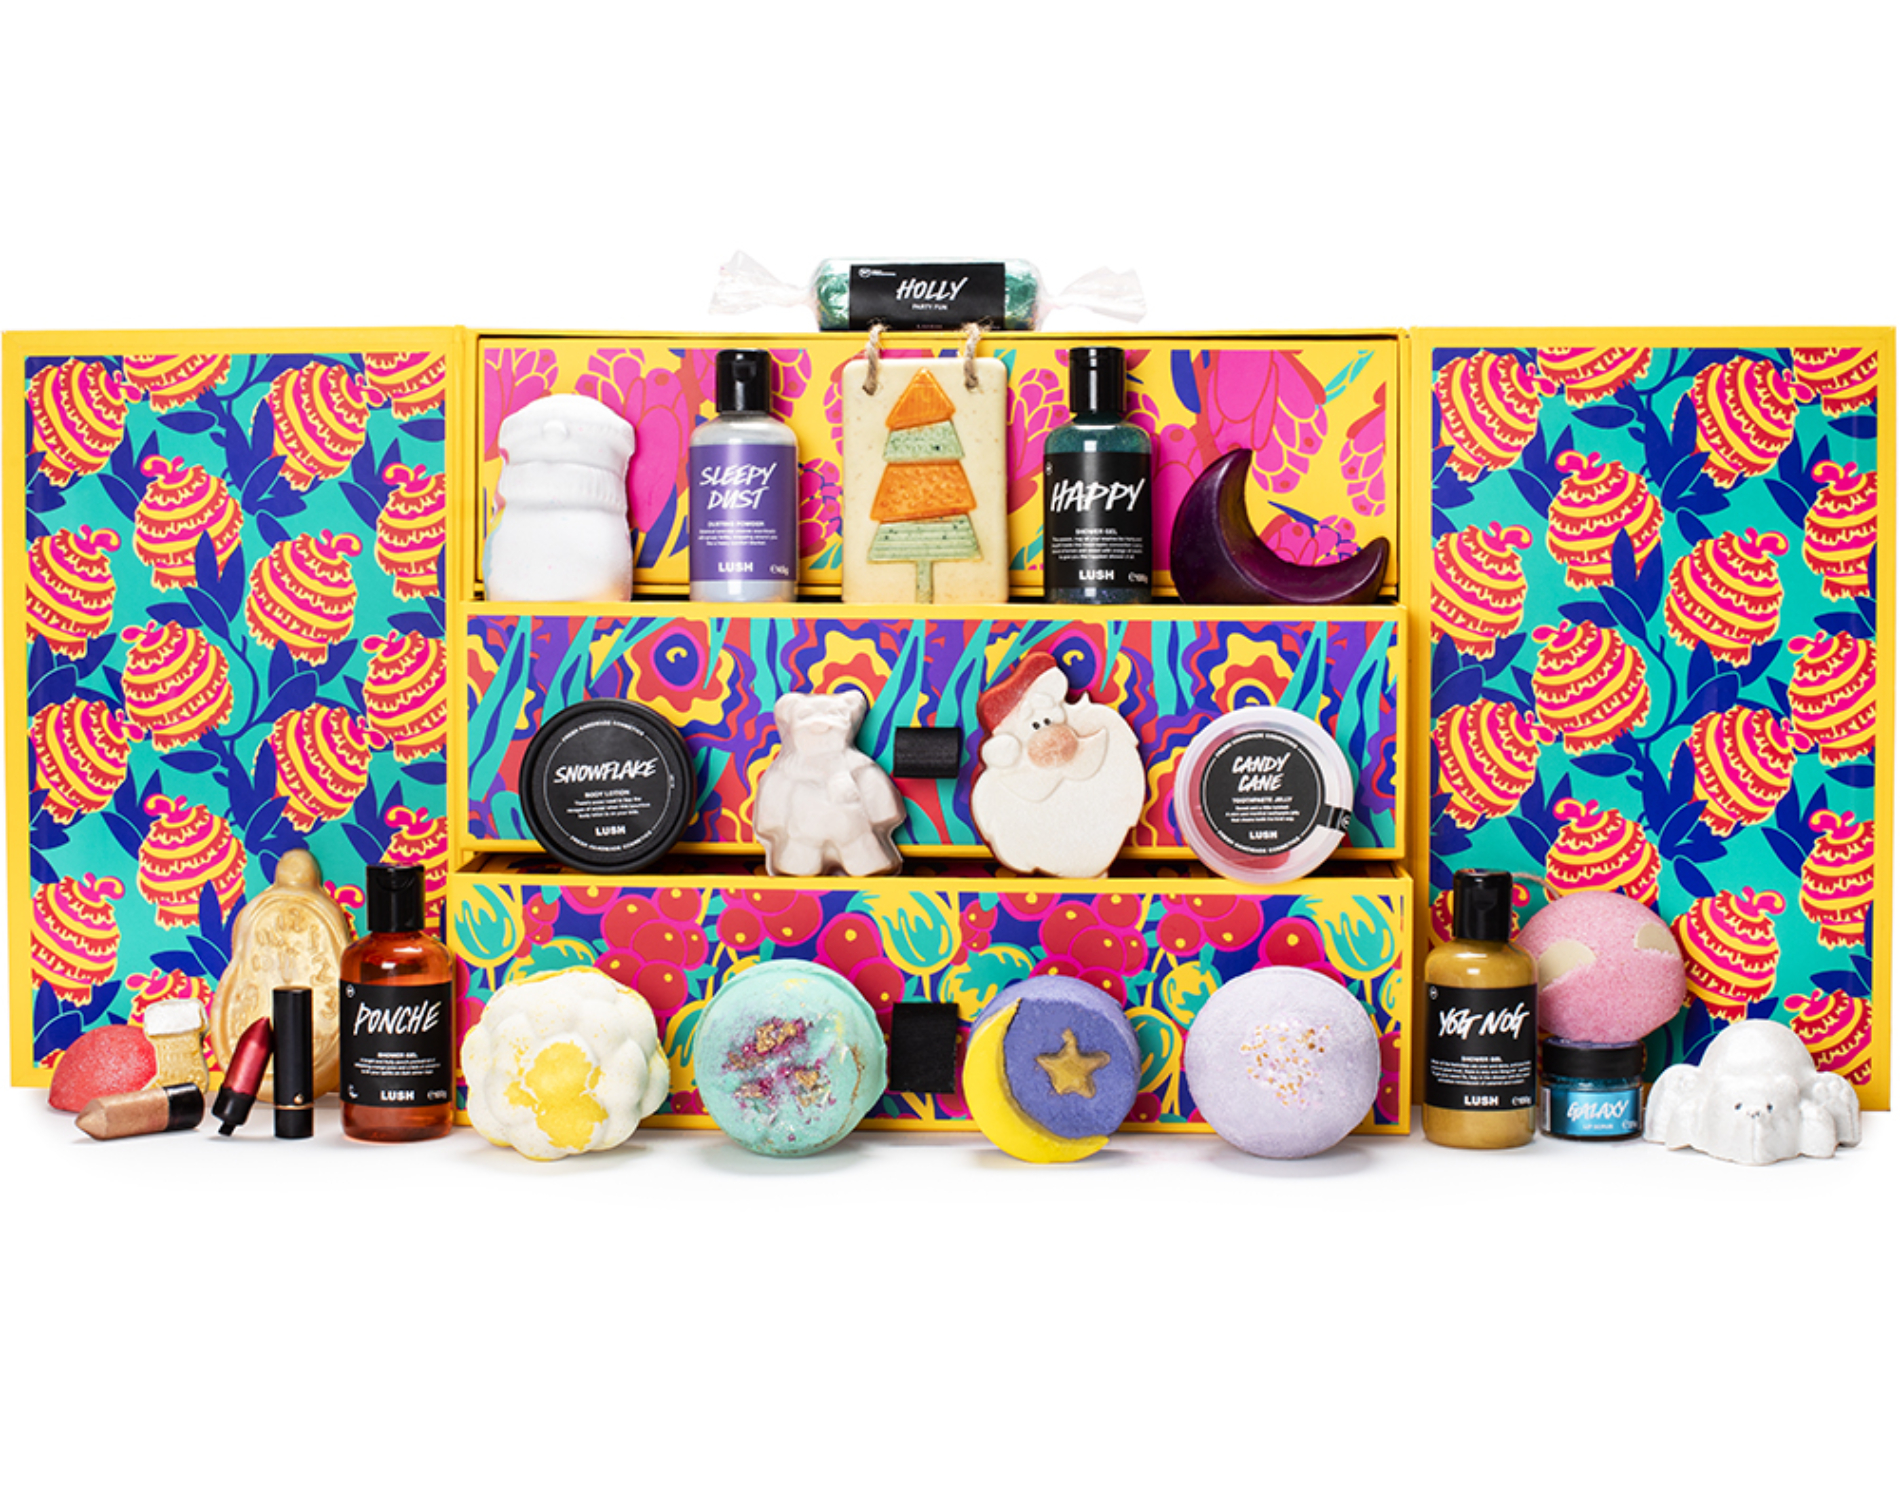 beauty advent calendars 2020, Lush Advent calendar